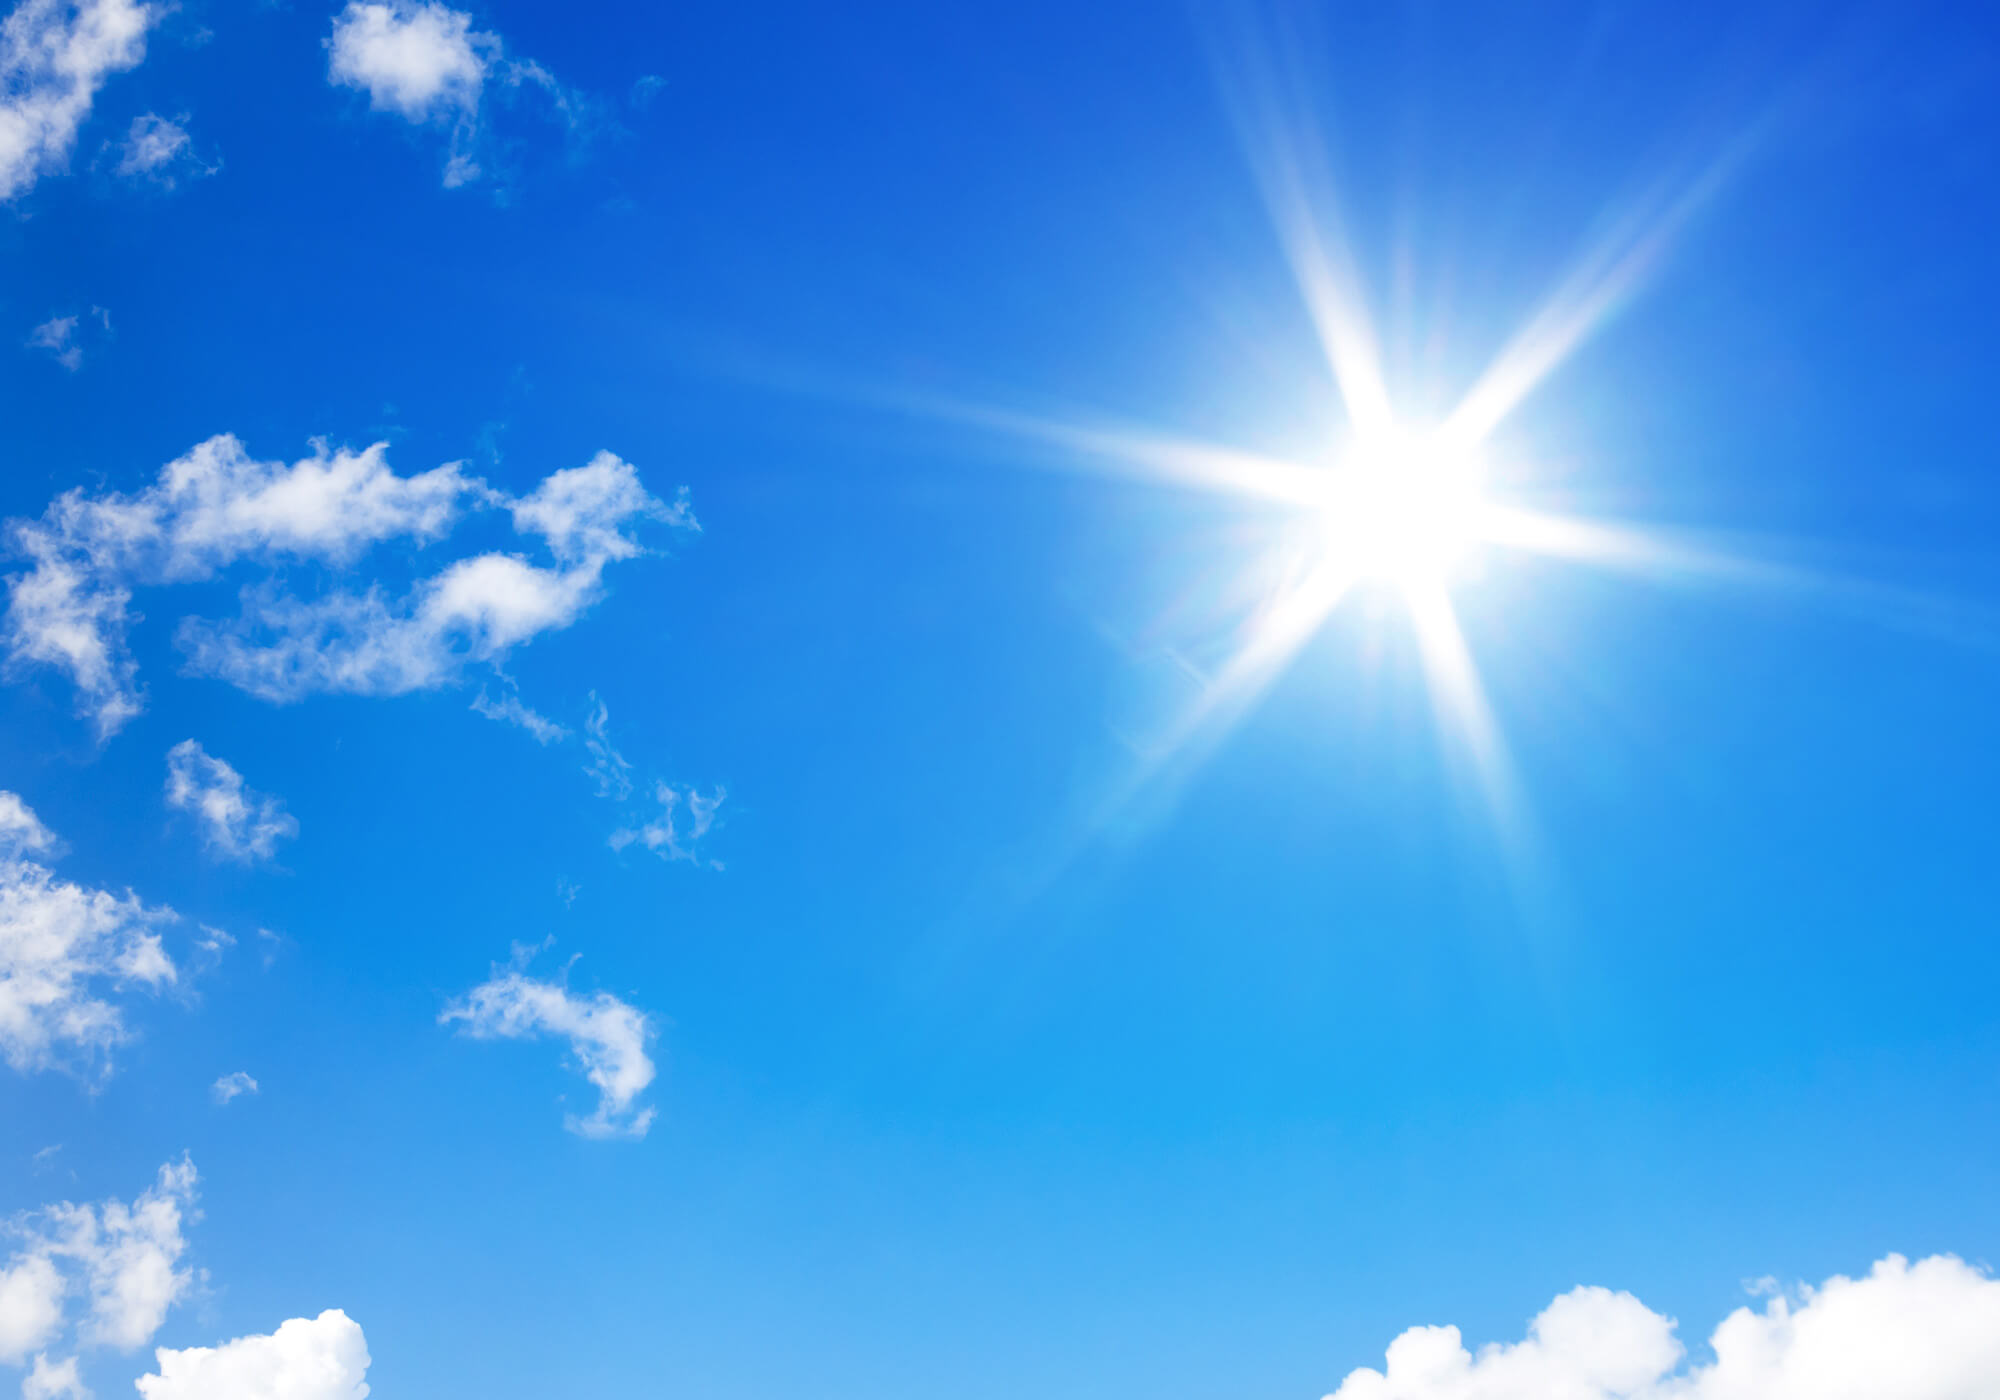 bright sun in the blue sky with wispy clouds